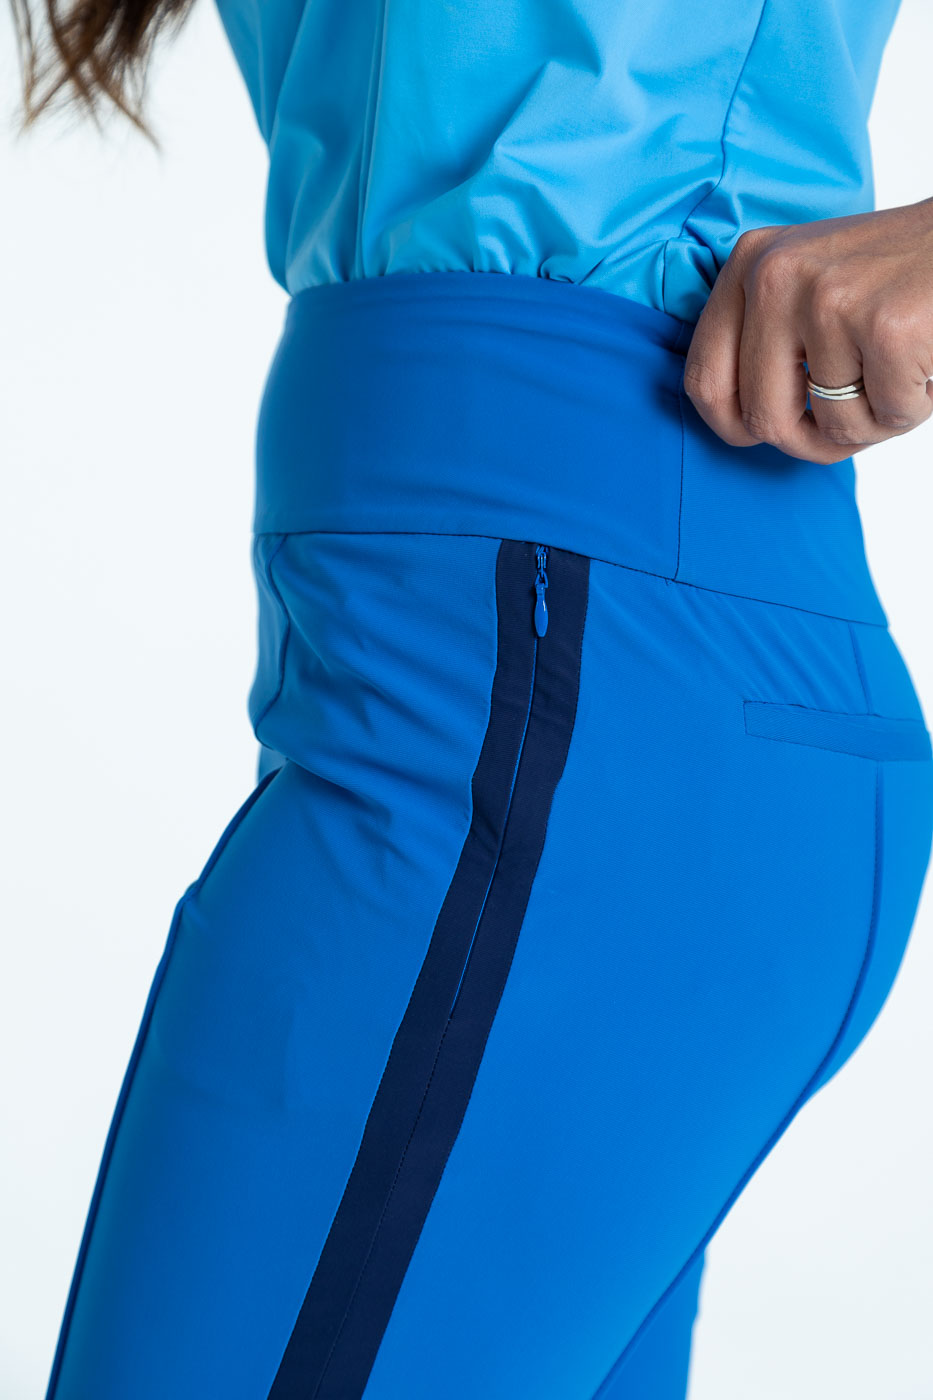 Closer side view of blueberry blue Tailored Track golf pants with a cornflower blue Free and Easy sleeveless golf top